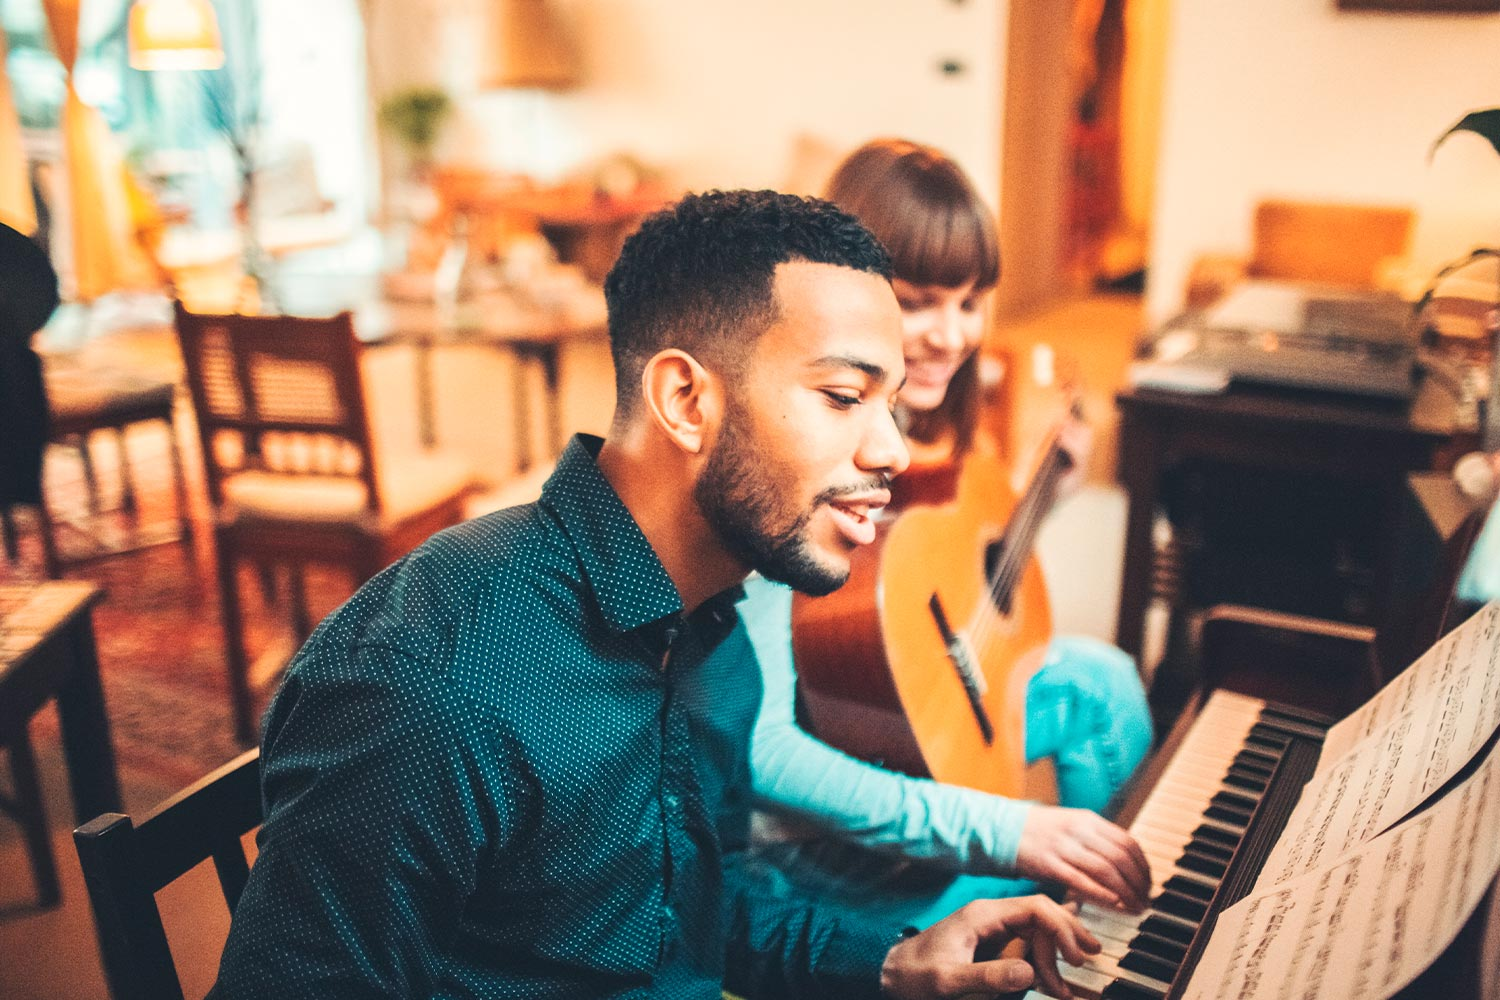 How Having Empathy For Those You Pitch Music To Can Improve Your Chances